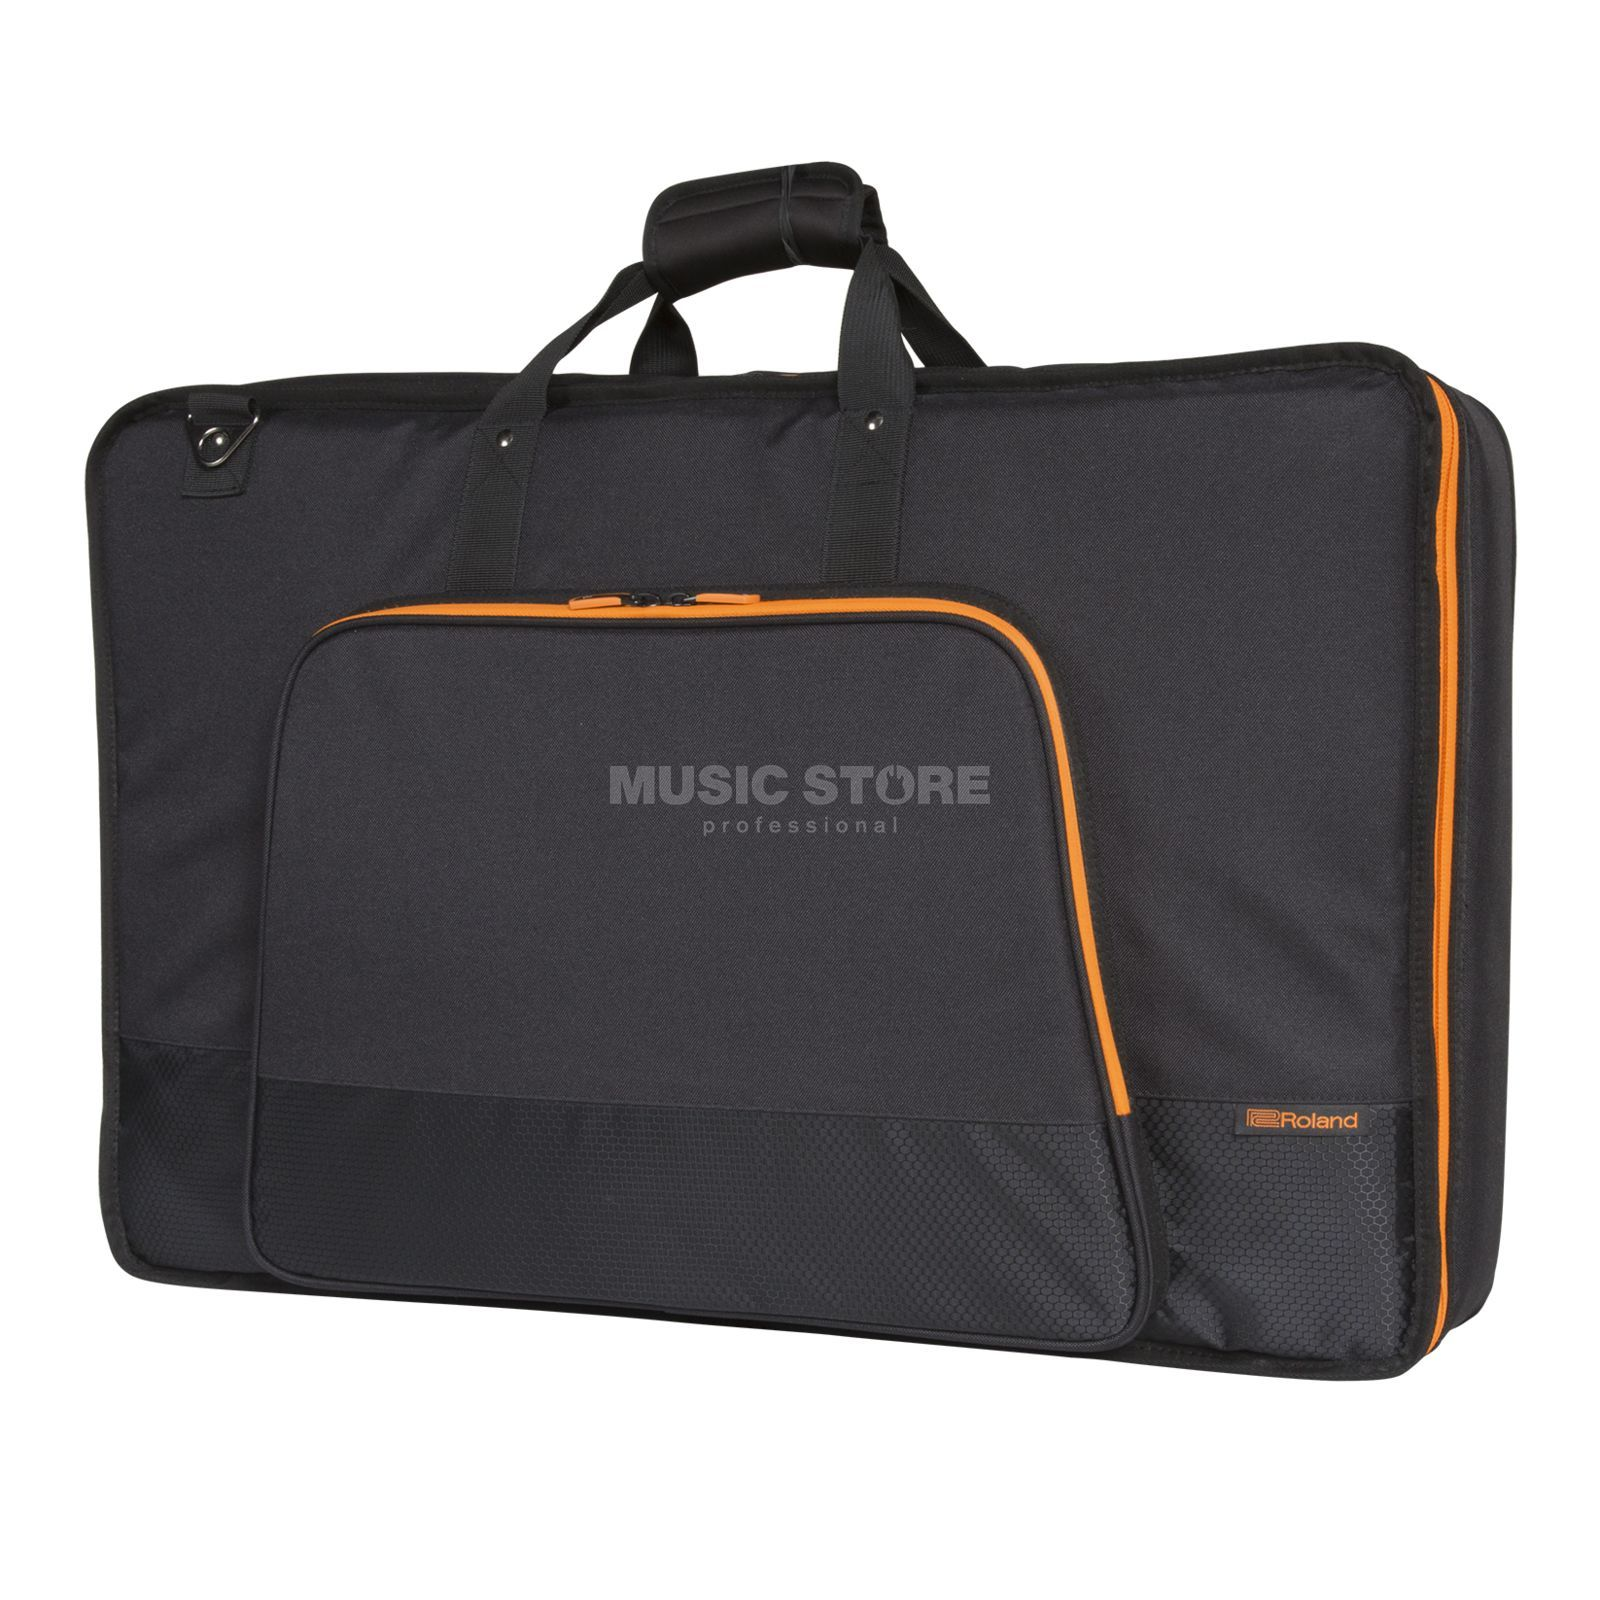 Roland CB-GDJ808 Bag for DJ-808 Produktbild